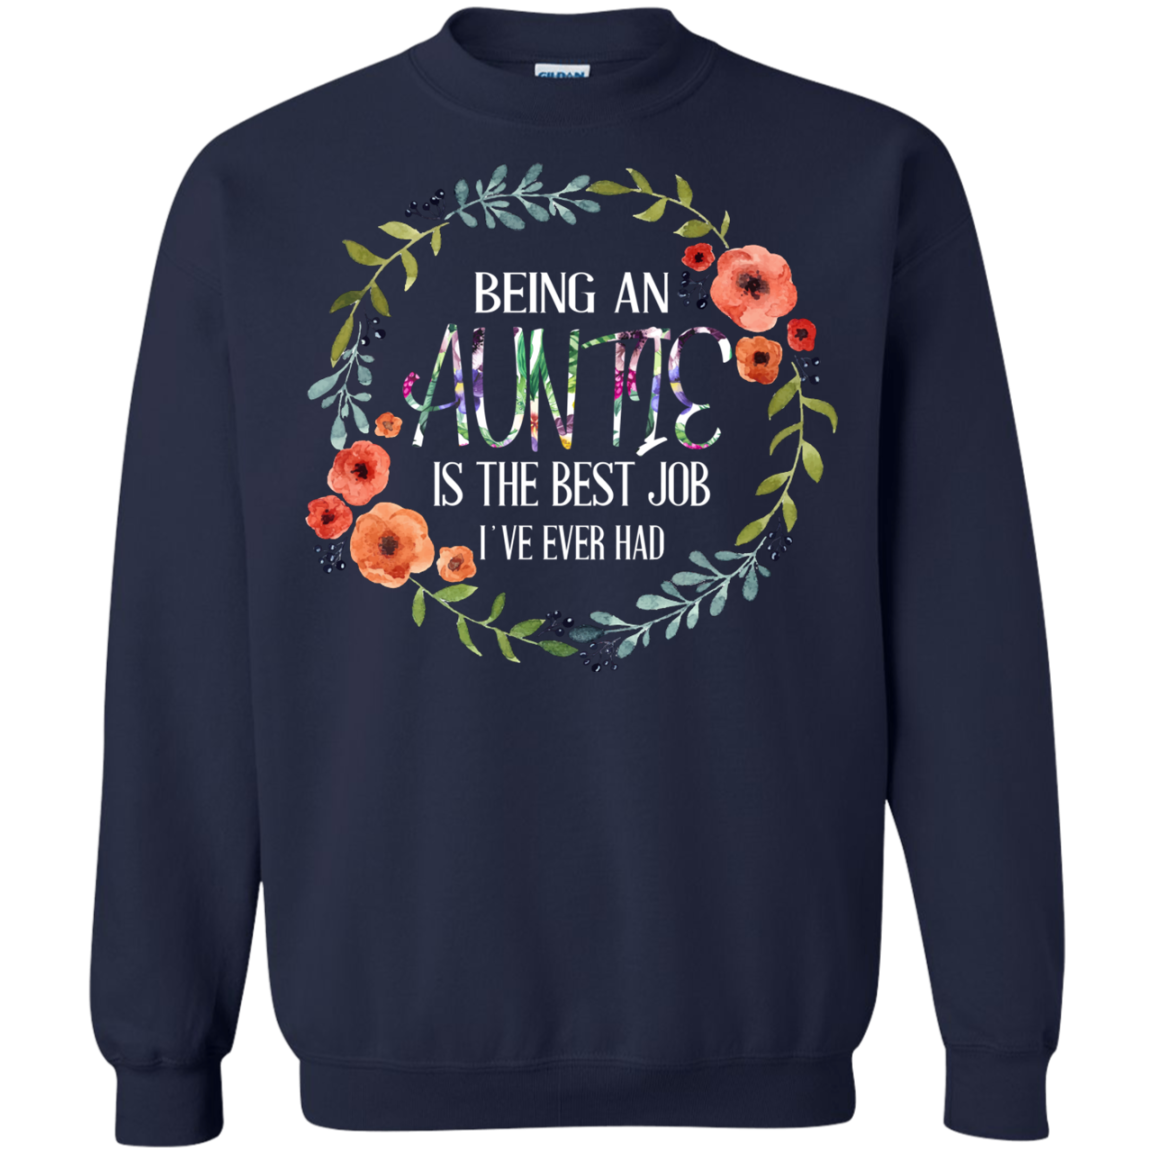 Auntie T shirts Being An Auntie Is The Best Job I've Ever Had Hoodies Sweatshirts TH